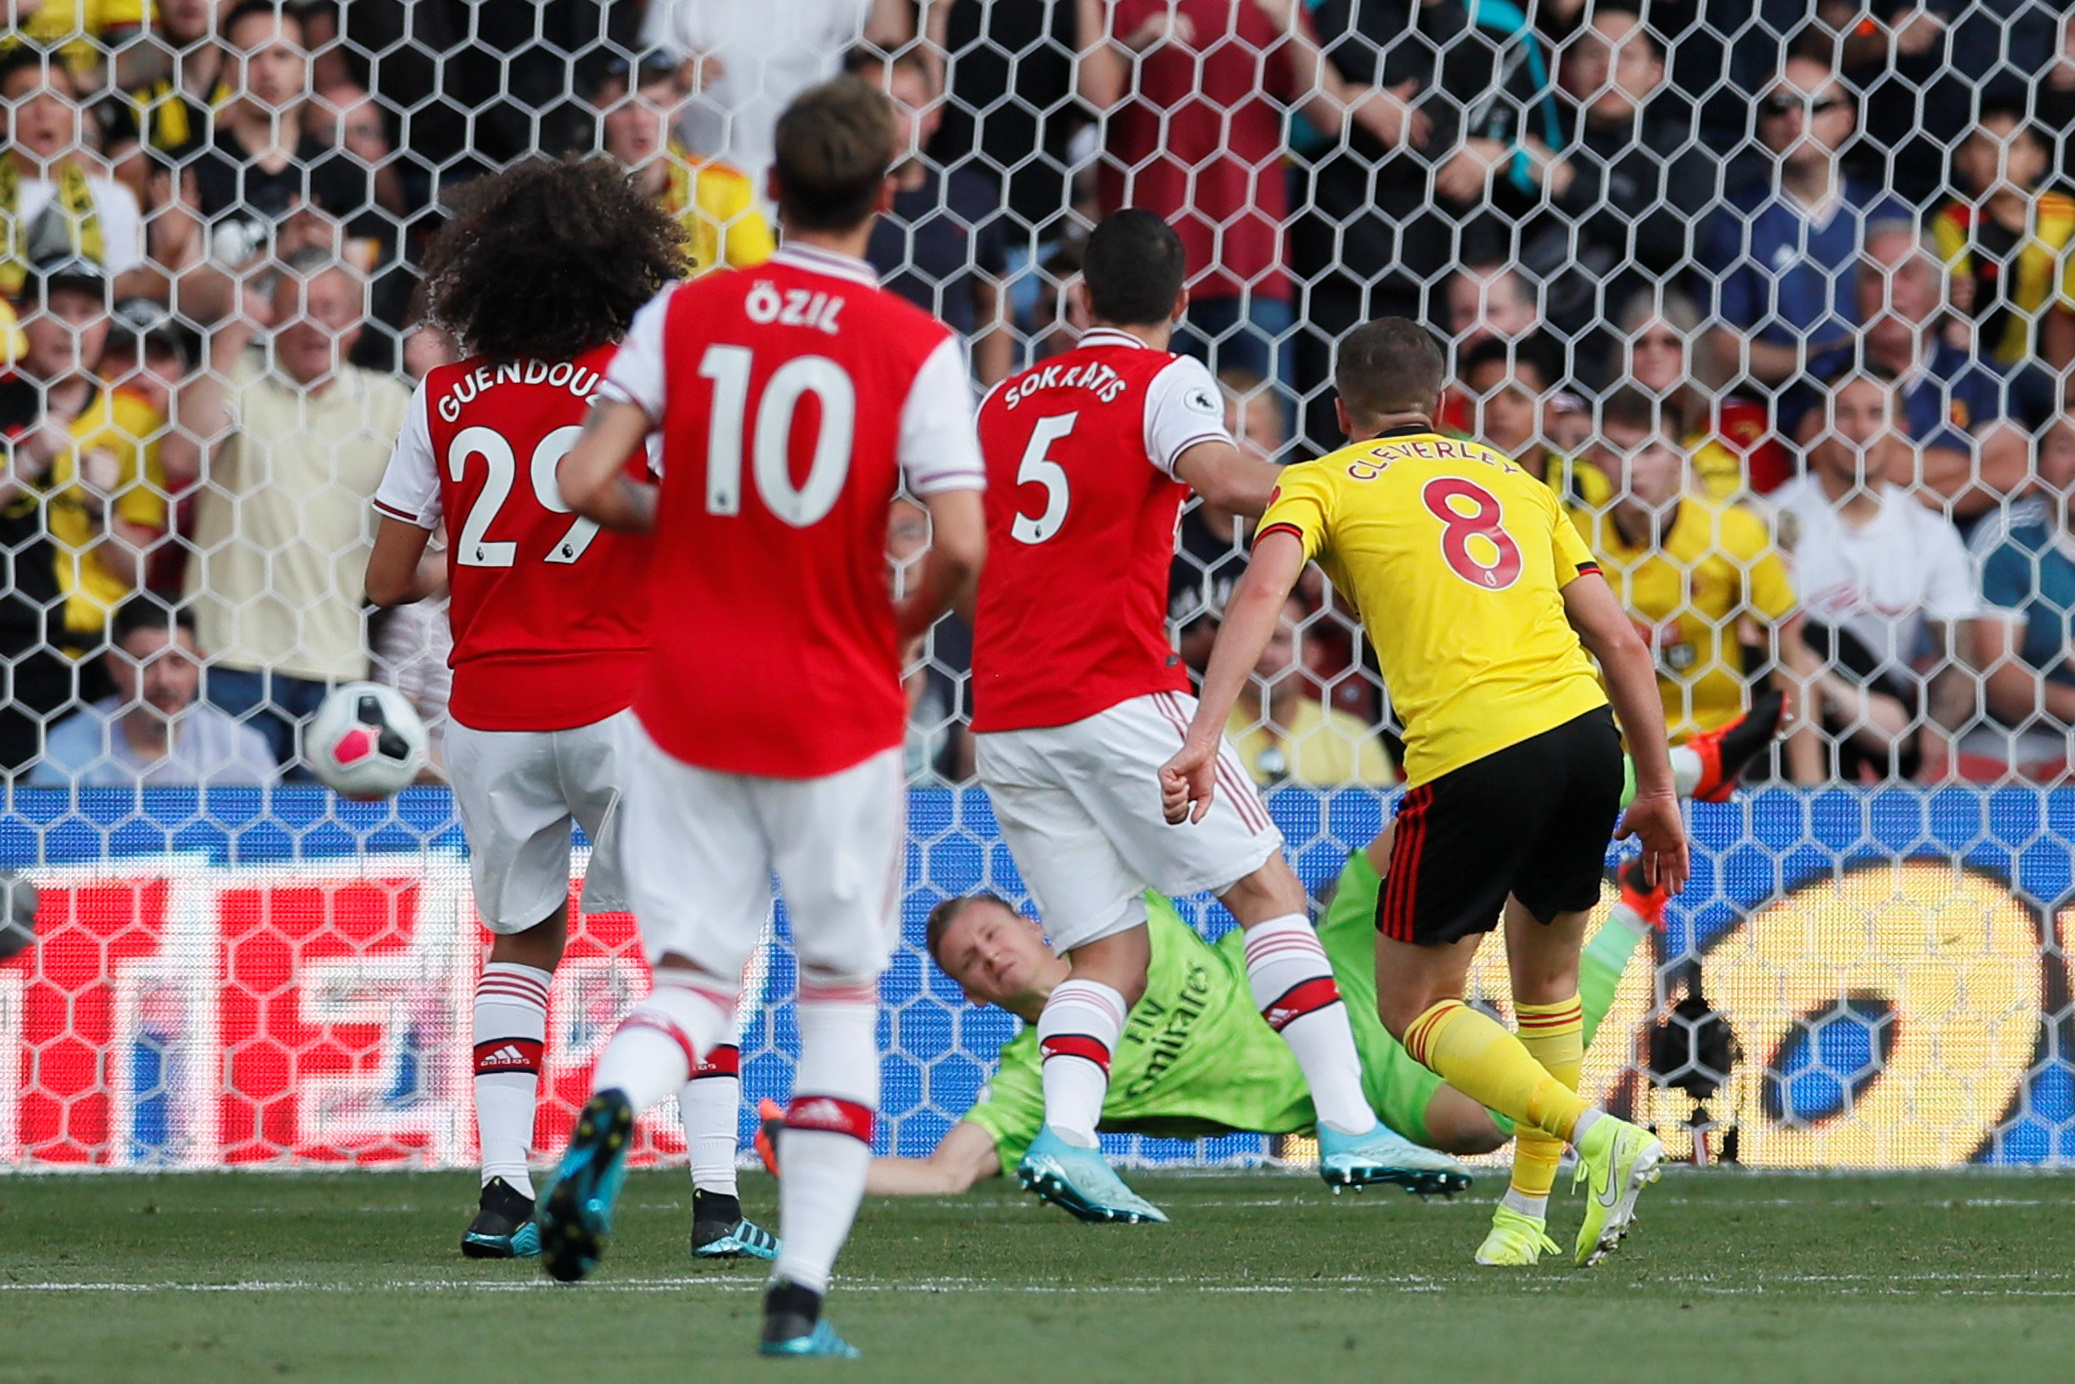 Tom Cleverley was surprised by Arsenal's dangerous tactics against Watford